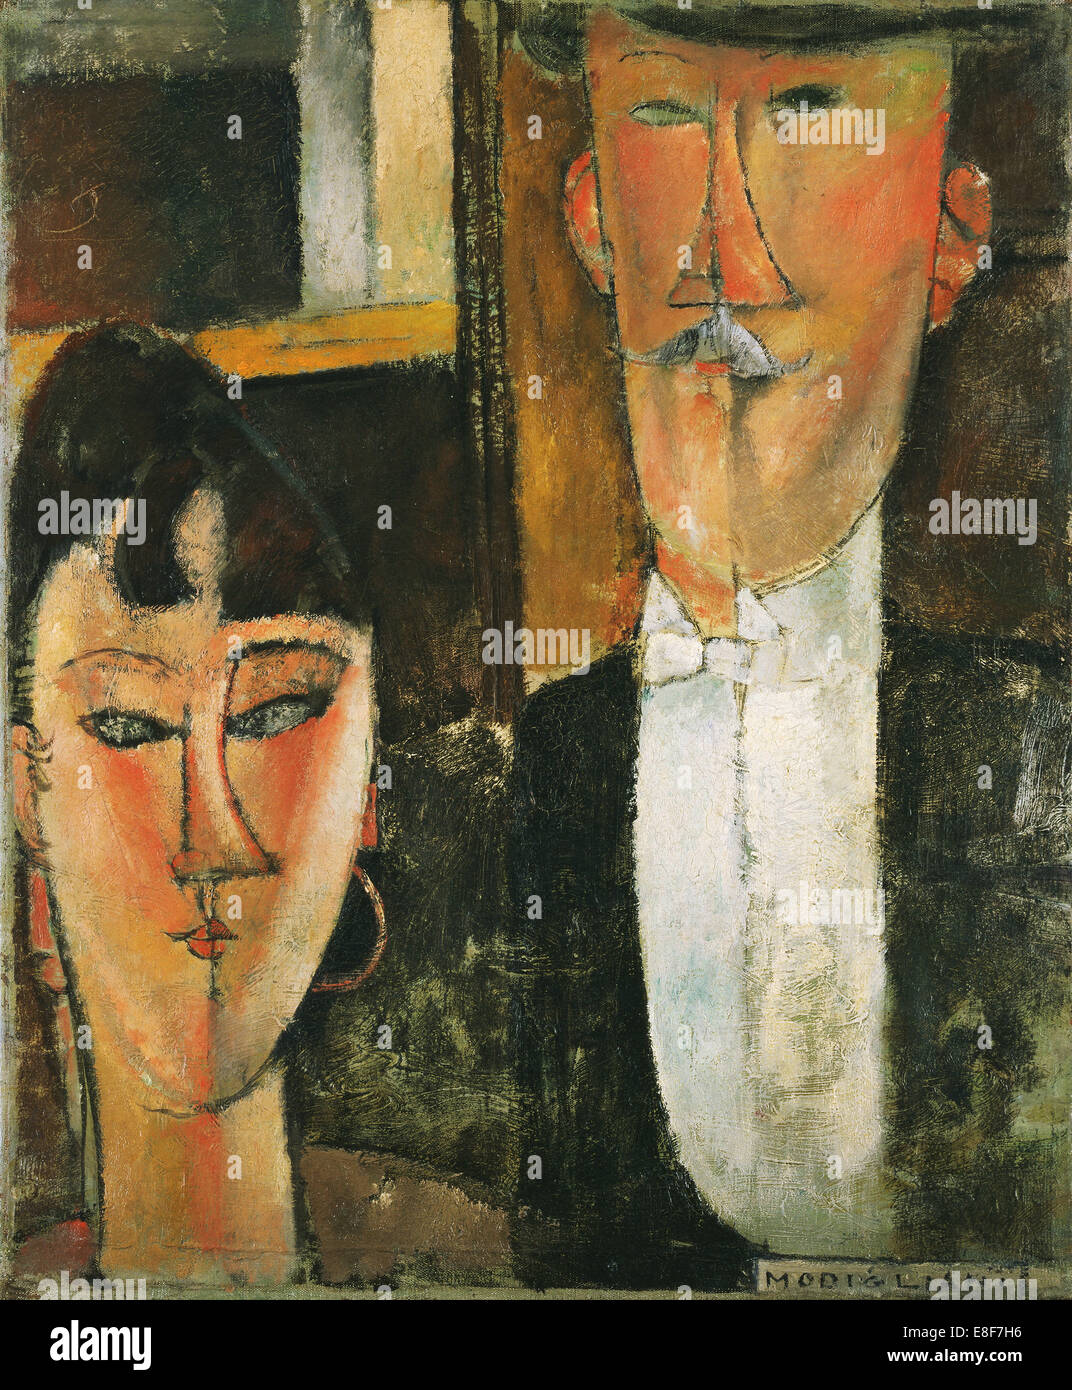 Bride and Groom. Artist: Modigliani, Amedeo (1884-1920) - Stock Image